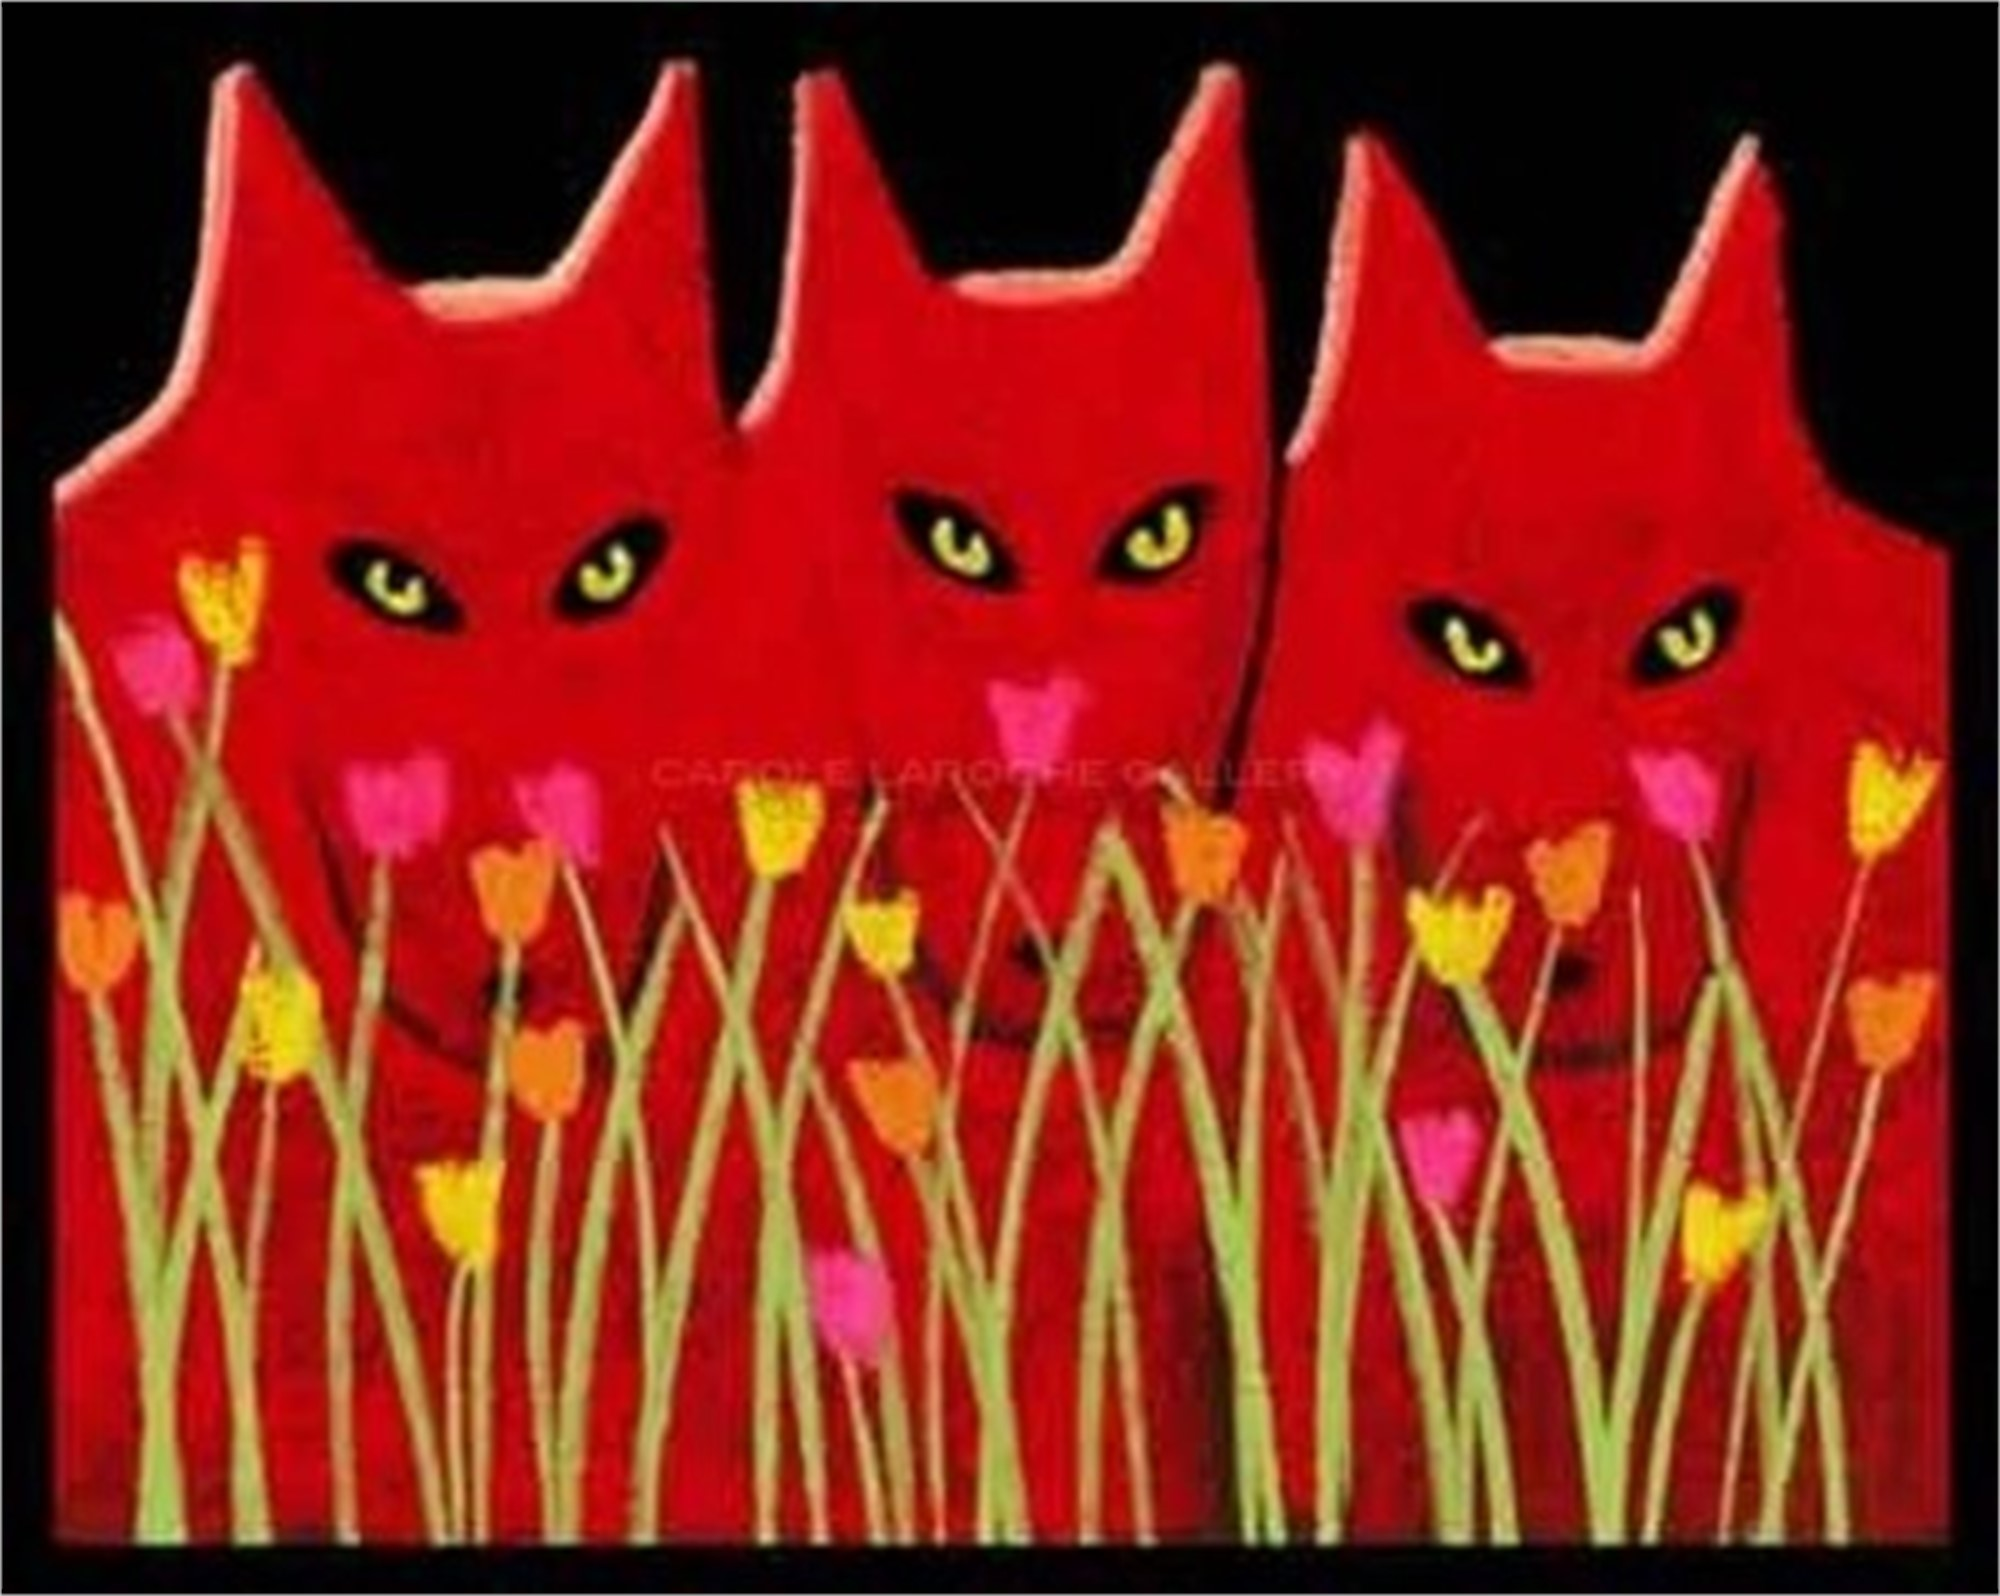 "THREE RED WOLVES AND WILDFLOWERS - limited edition giclee on paper w/frame size of 23""x27"" by Carole LaRoche"